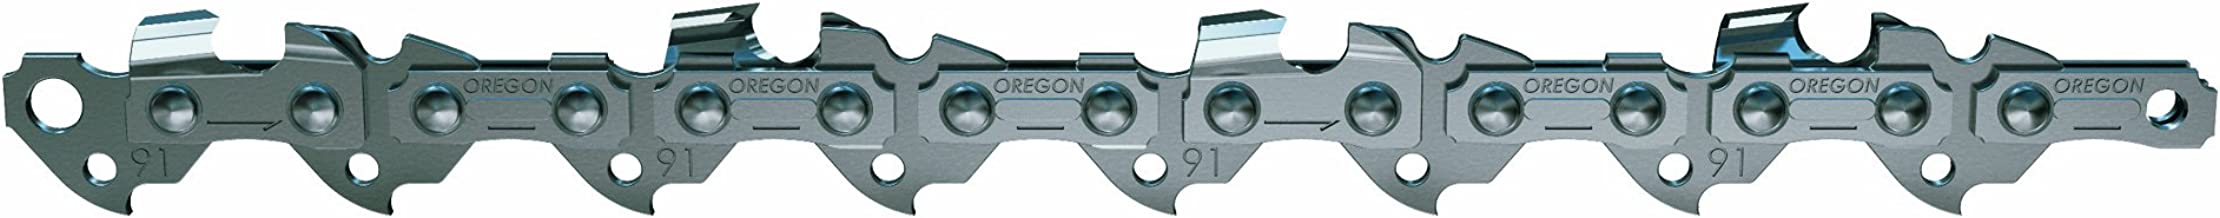 Oregon Chainsaw Repl. Chain Chicago 68862 Pole saw 8inch 91-33 Fits Saws with 3/8inch LP pitch .050gauge 33dl